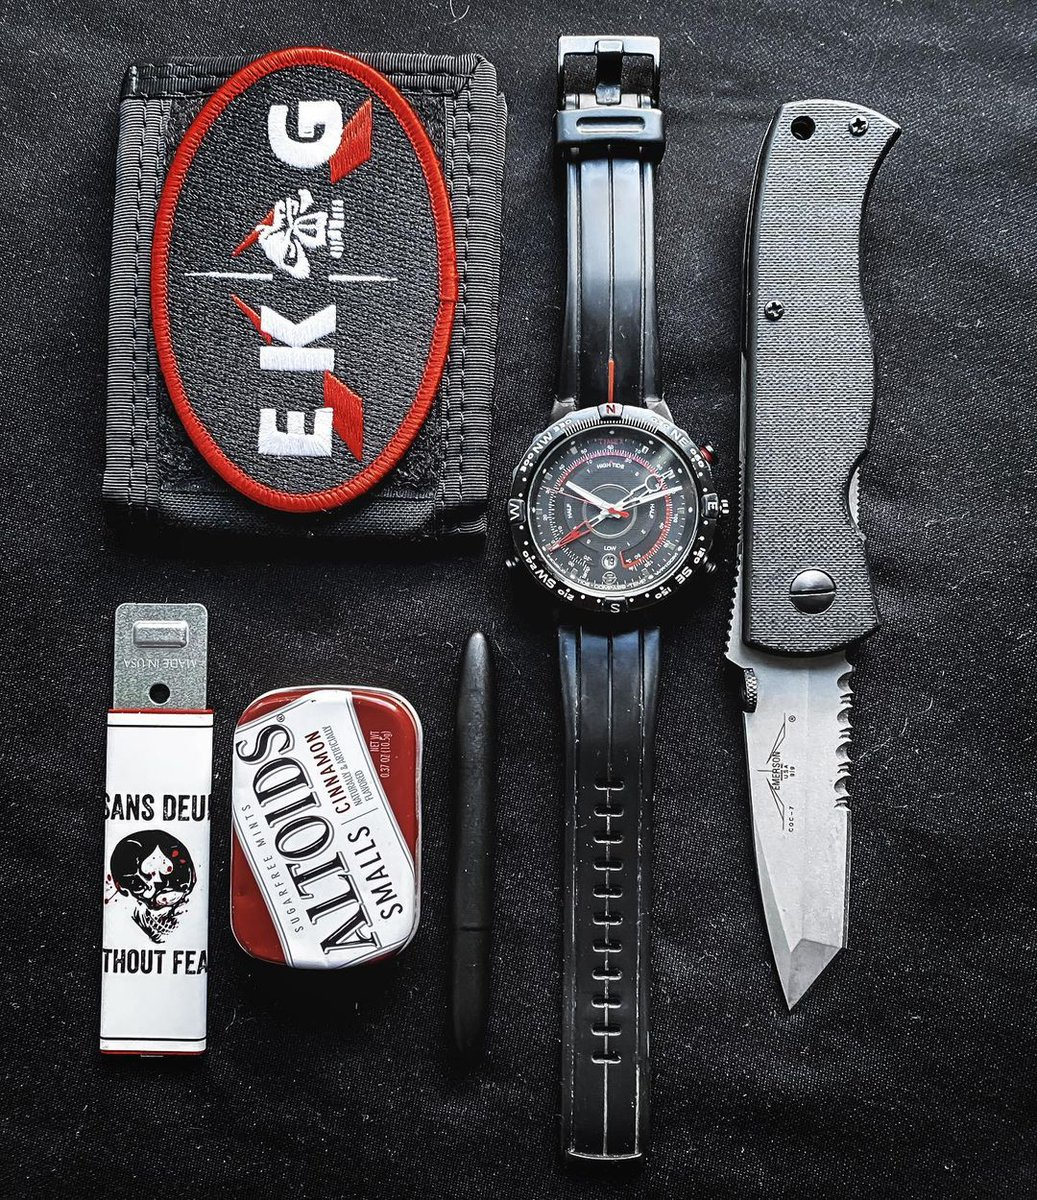 Repost @pedrospocket by @media.repost: Tuesday stuff 🙏🏻⚔️🕊 #pedrospocket #emersonknives #ekiordie #cqc7 #tantotuesday #ekog #emersonaholic #tanto #pocketdump #unusualsuspects #pushknife #knifenut #knifelife #everydaycarry #edcgear #fisherspacepen